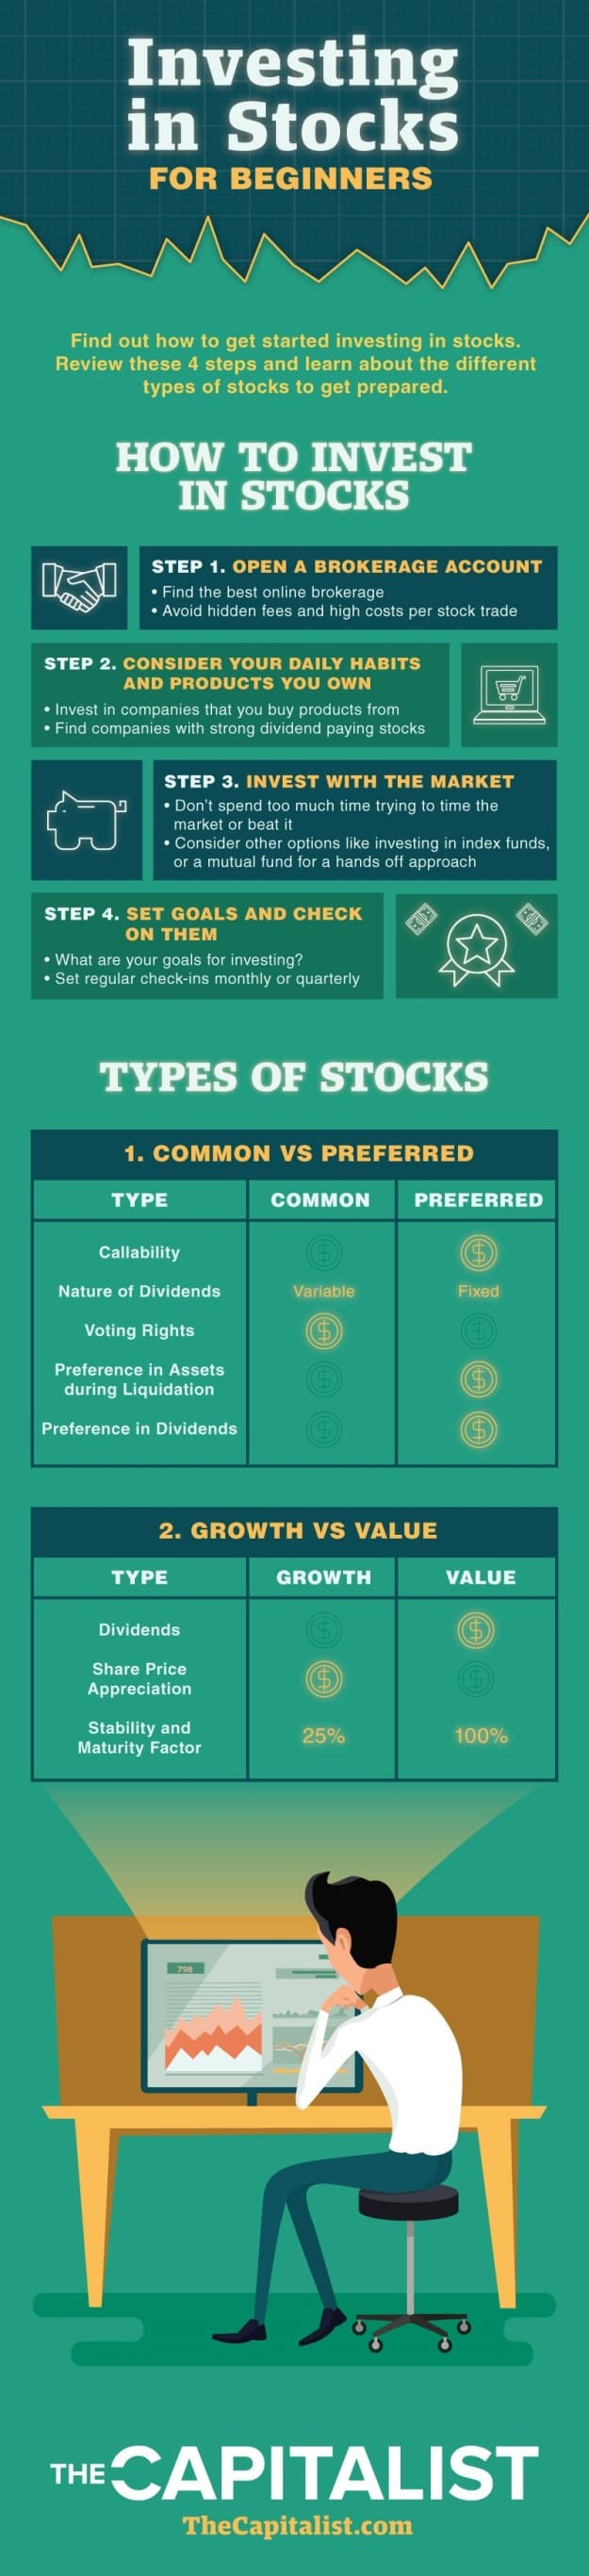 Investing In Stocks For Beginners | Grow Financial Wings